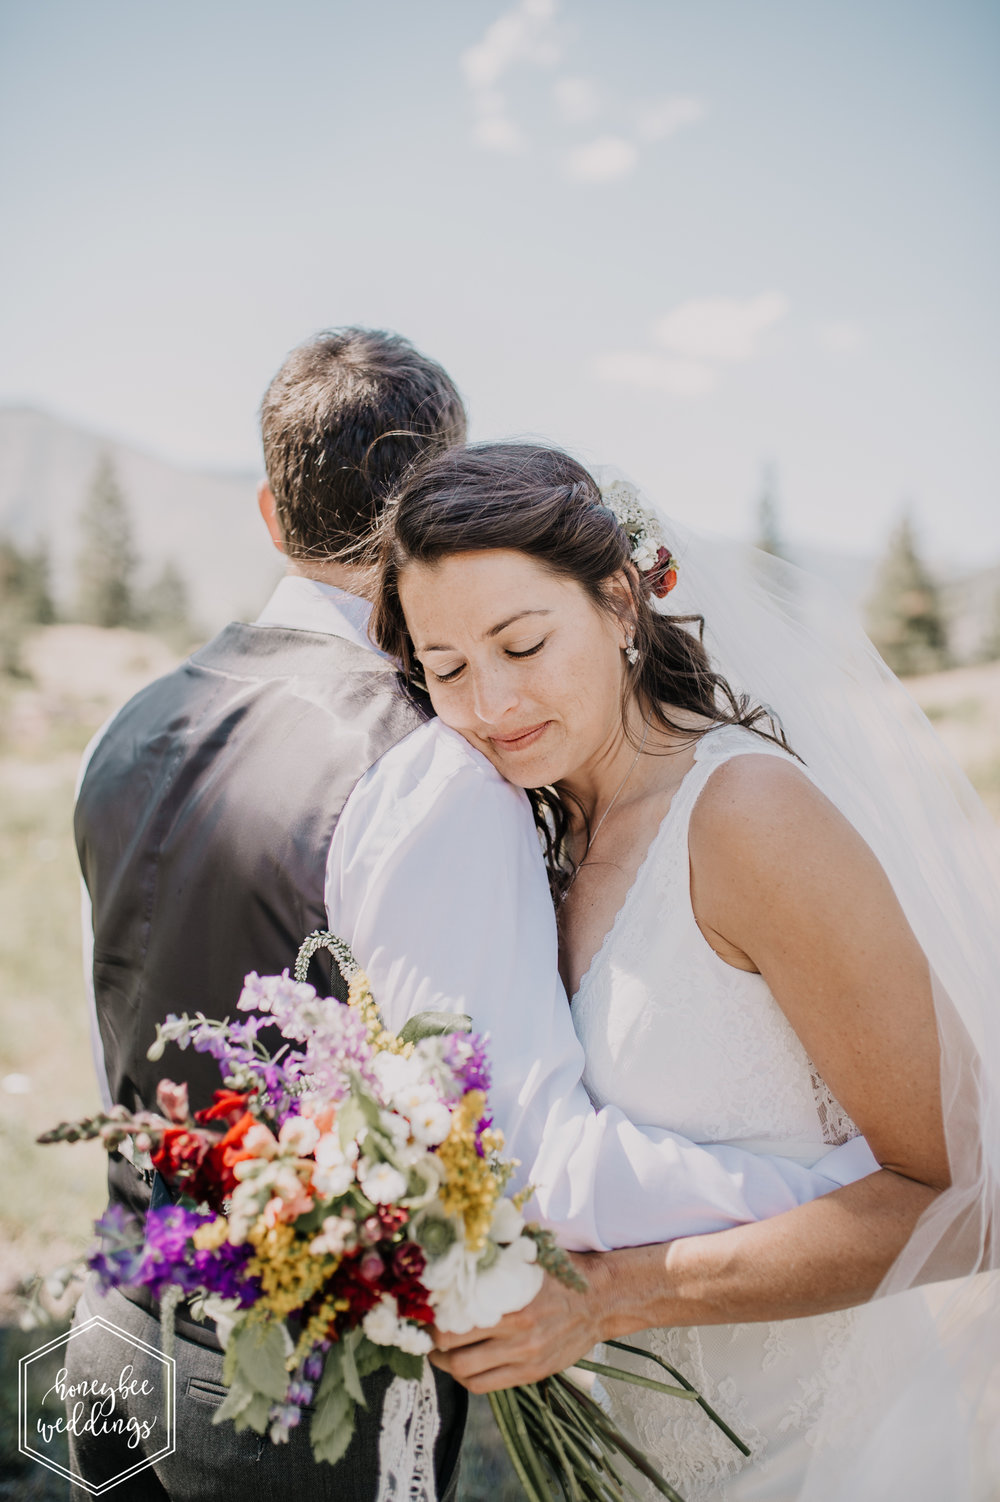 189 White Raven Wedding_Montana Wedding Photographer_Honeybee Weddings_ Meghan Maloney + Arza Hammond 2018-0120-2.jpg